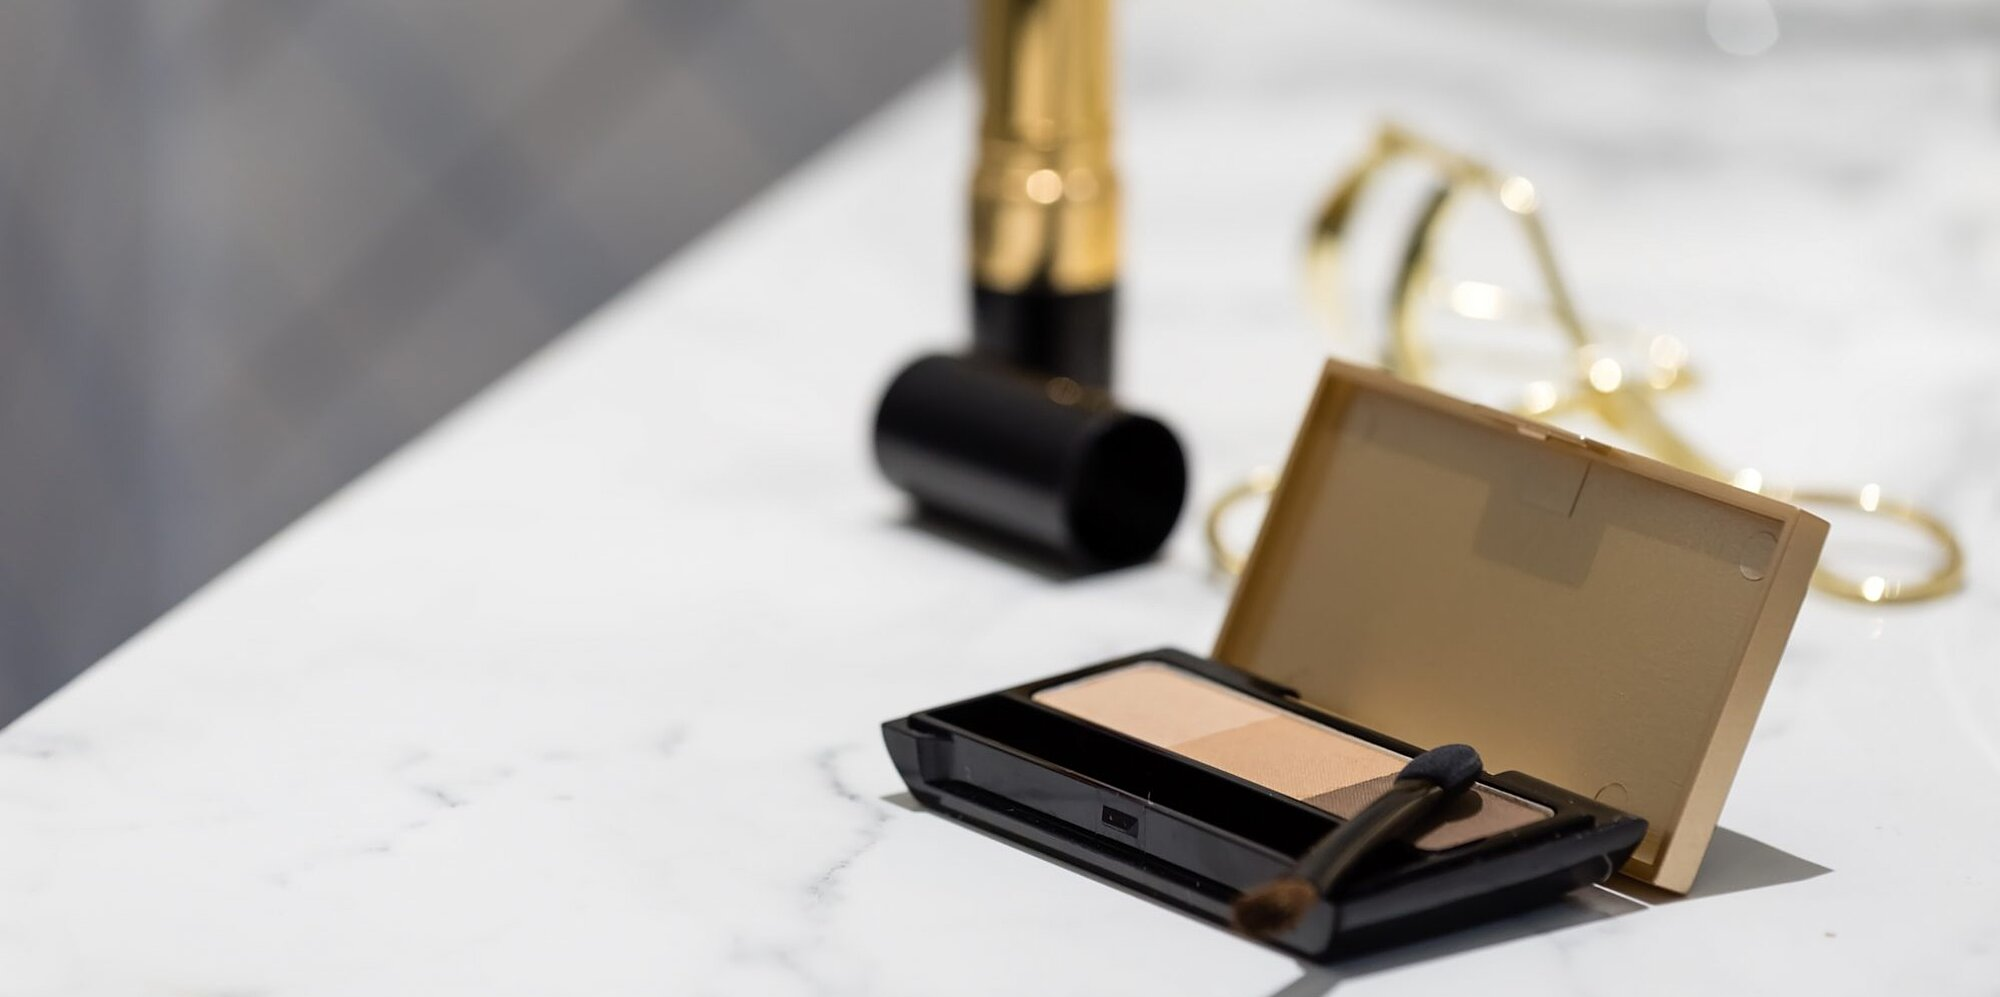 How to Build an Everyday, Essentials-Only Makeup Kit